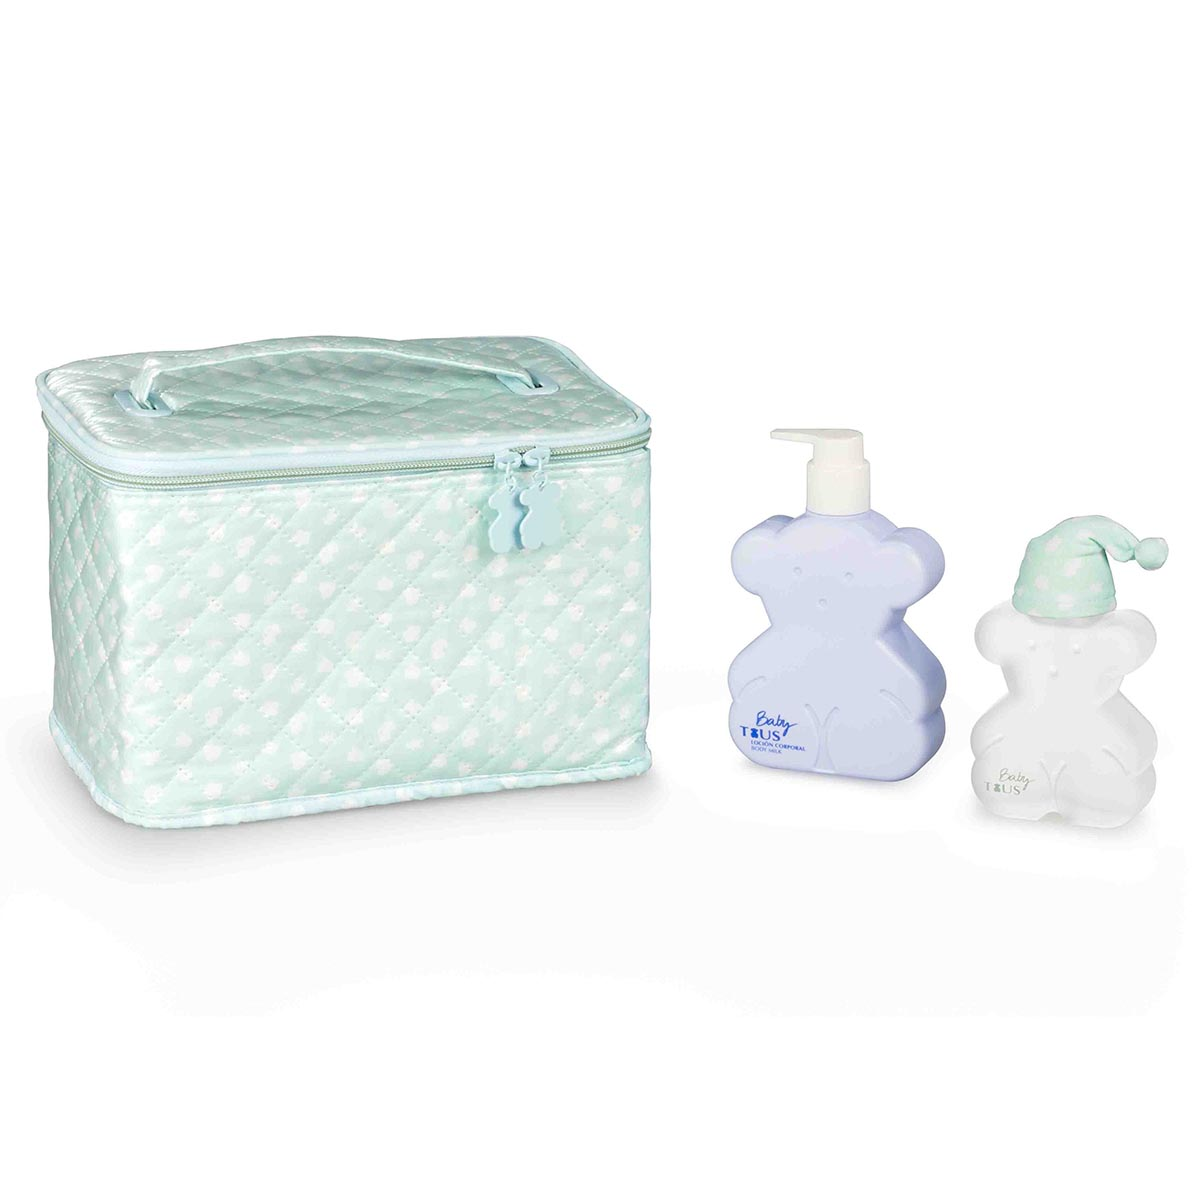 Tous baby eau de colonia 100ml vaporizador body milk 250ml neceser